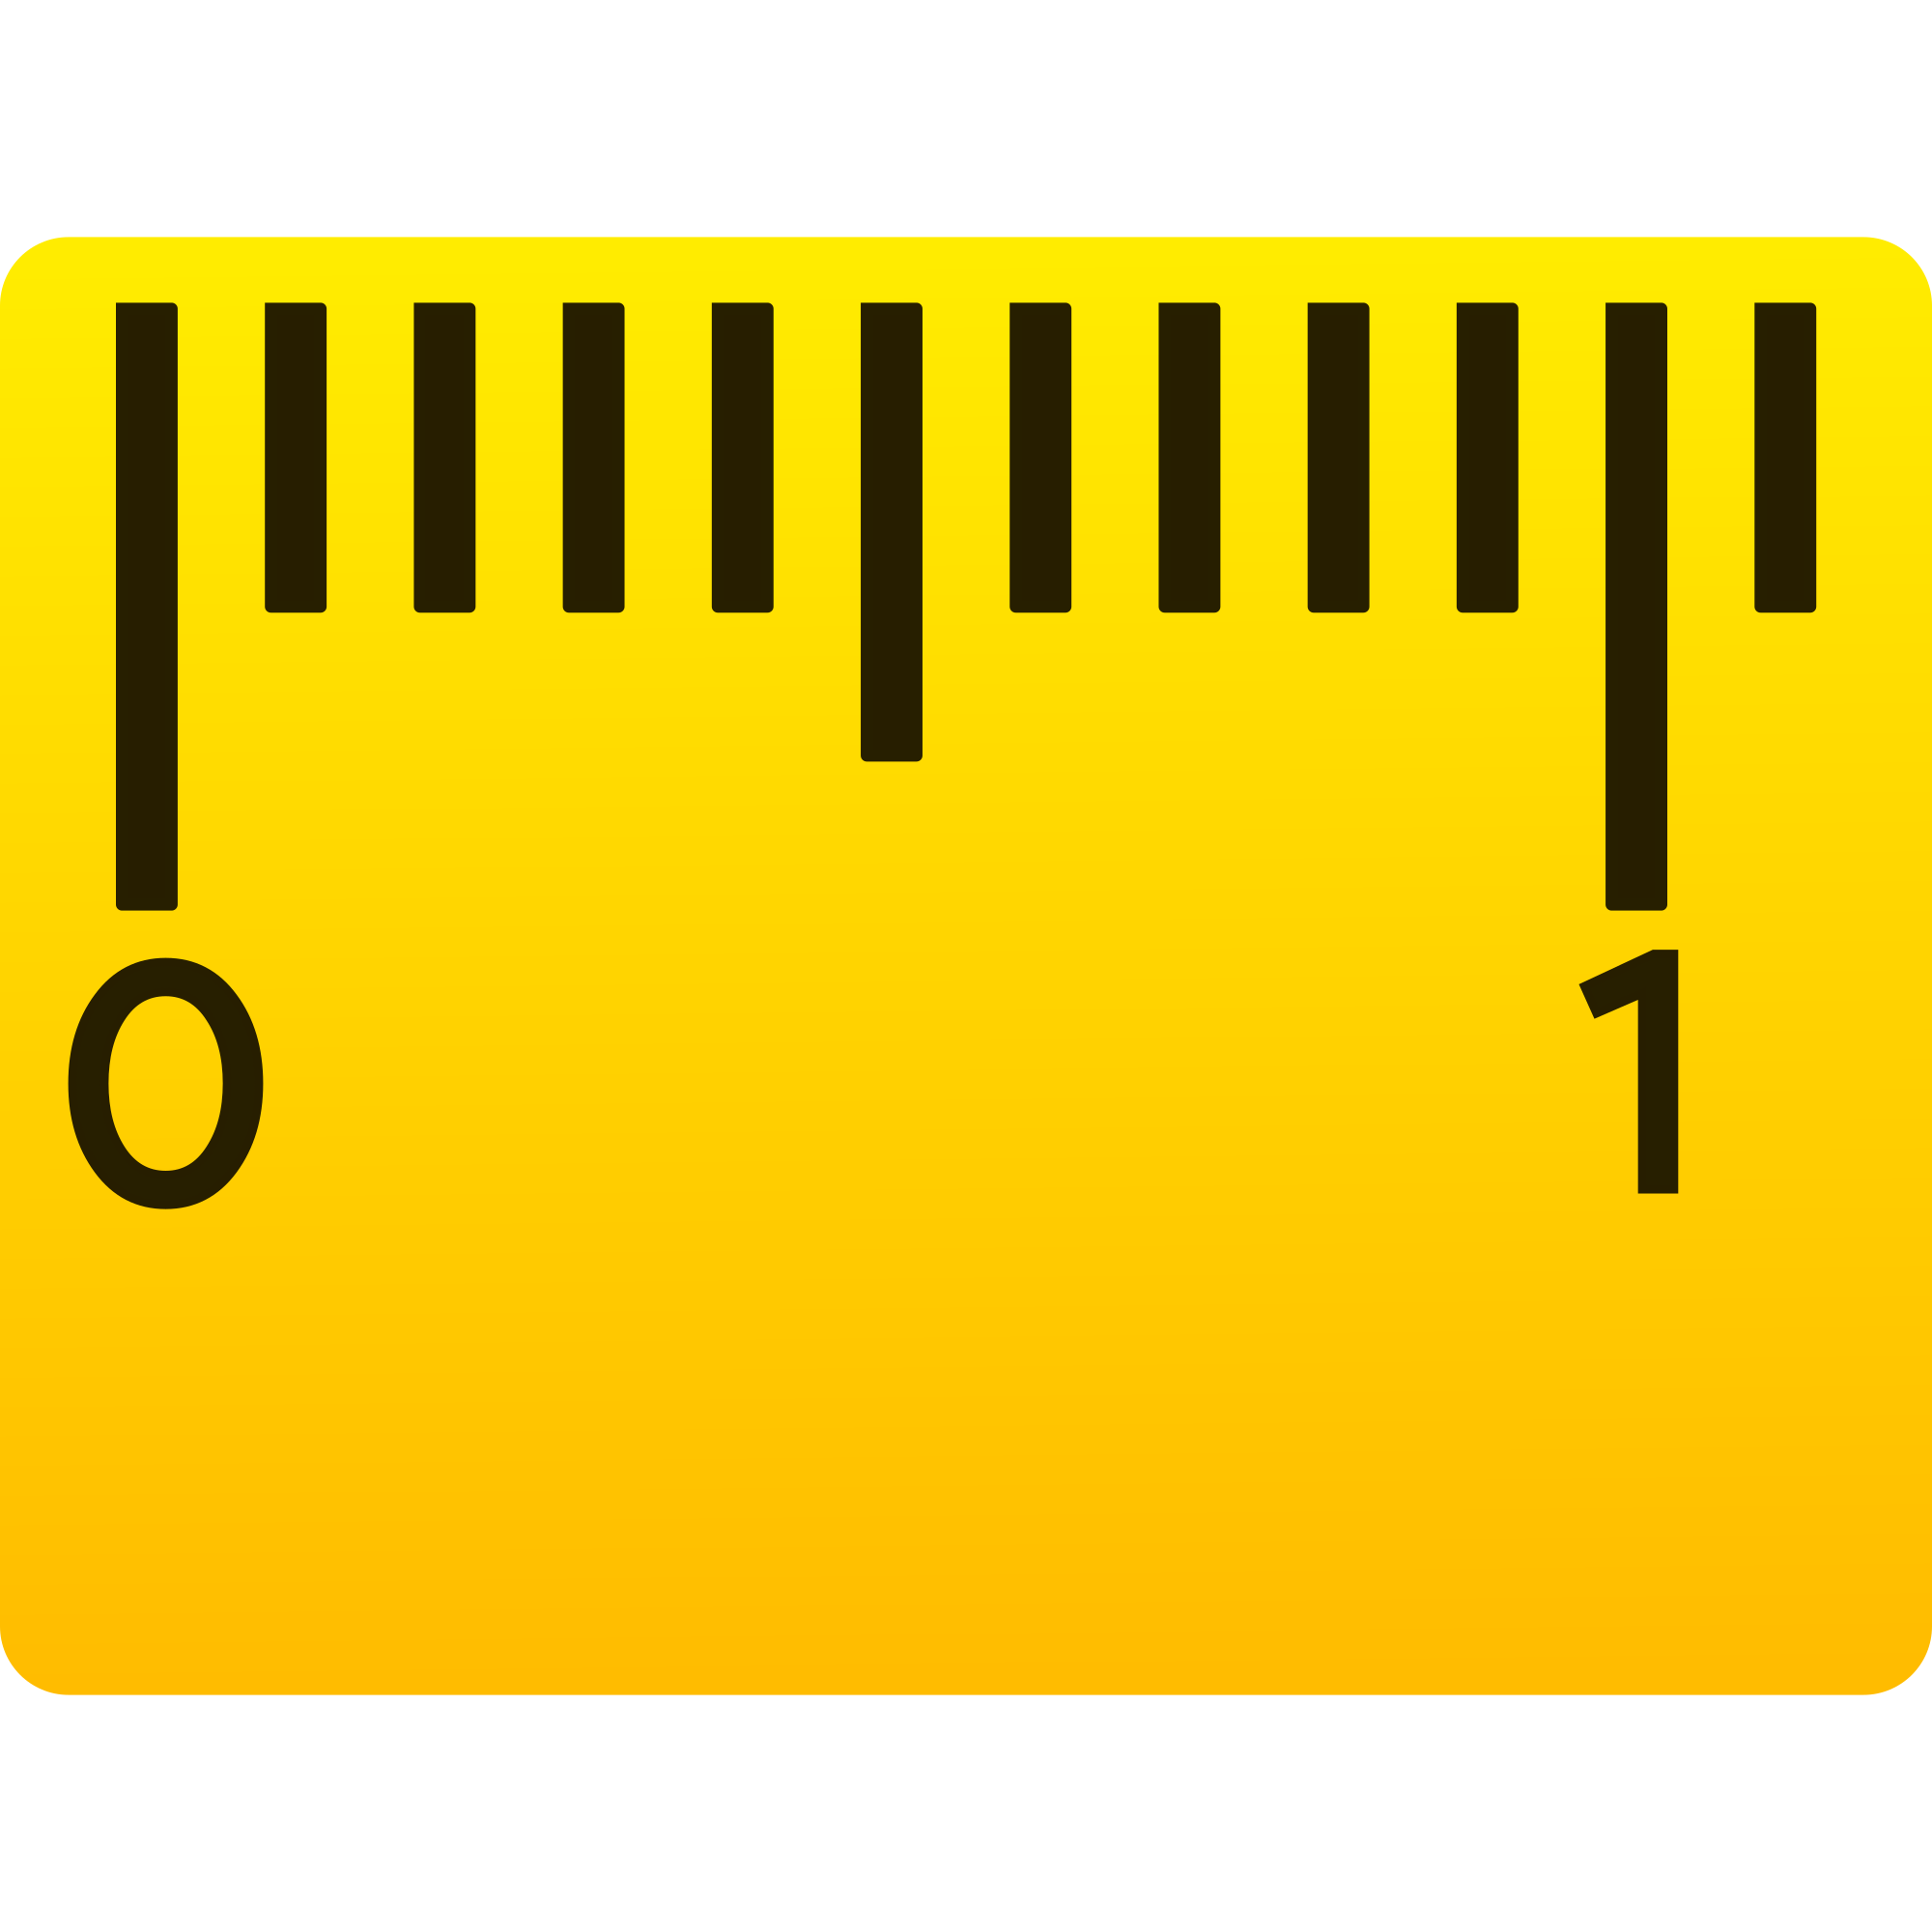 Clipart ruler yellow. File antu screenruler icon